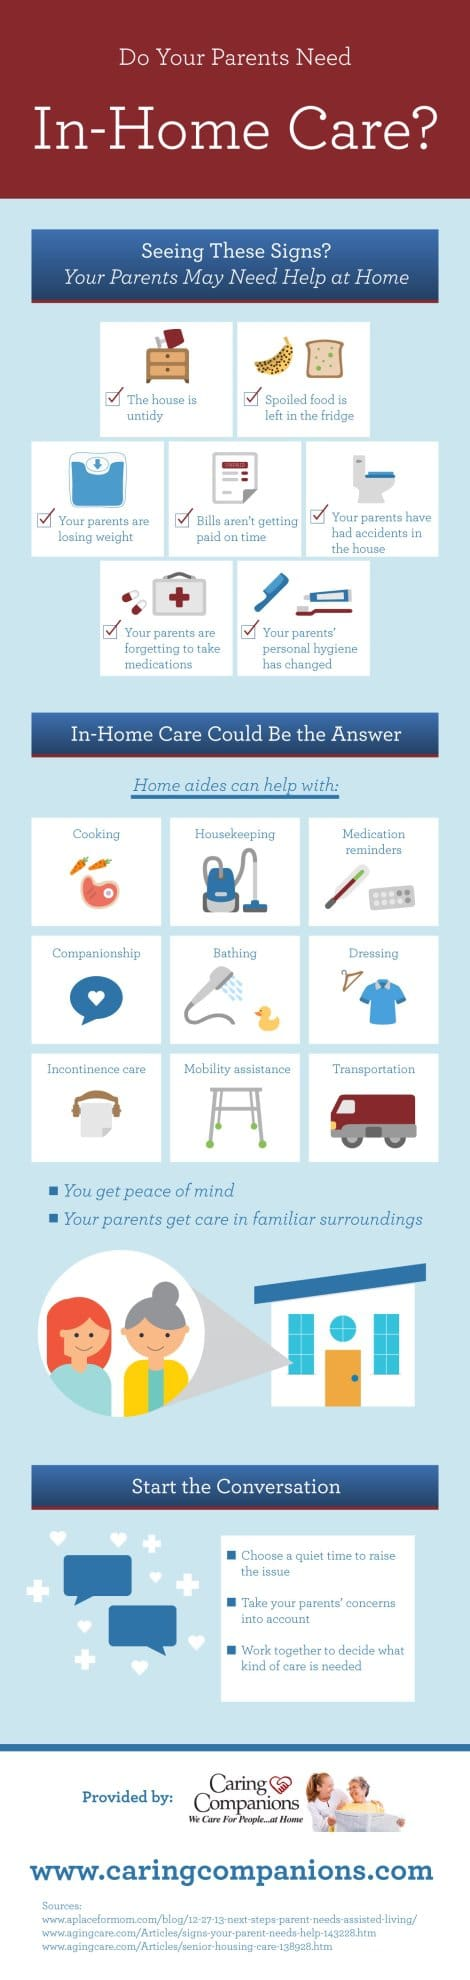 Do Your Parents Need In-Home Care? [INFOGRAPHIC] | Memphis, TN